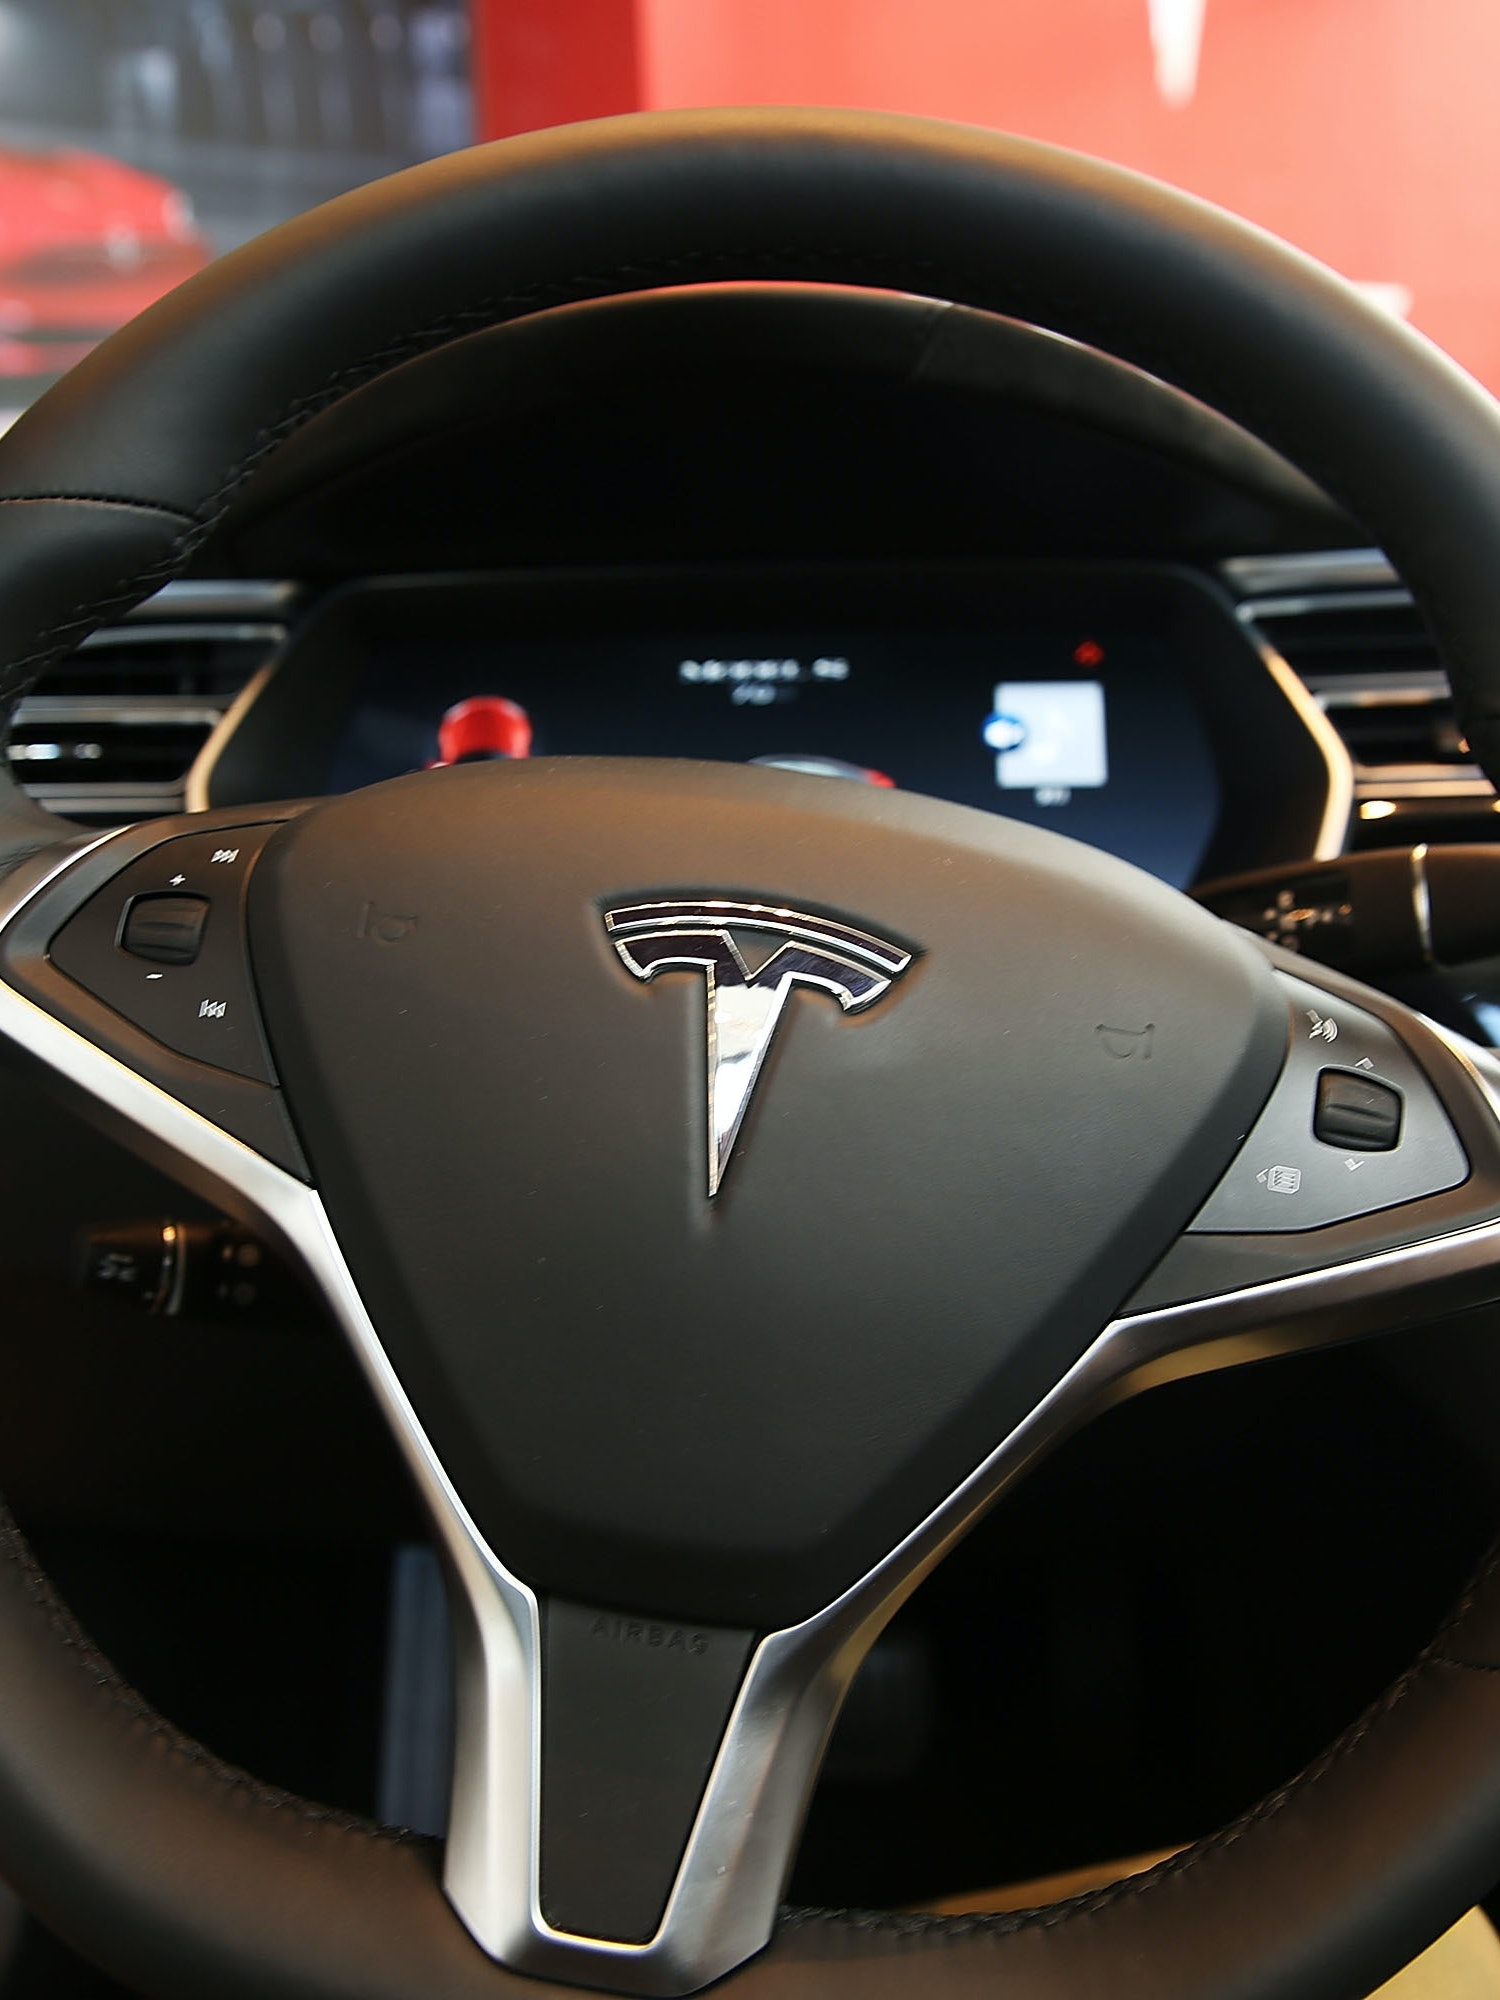 The inside of a Tesla vehicle is viewed as it sits parked in a new Tesla showroom and service center in Red Hook, Brooklyn on July 5, 2016 in New York City. The electric car company and its CEO and founder Elon Musk have come under increasing scrutiny following a crash of one of its electric cars while using the controversial autopilot service. Joshua Brown crashed and died in Florida on May 7 in a Tesla car that was operating on autopilot, which means that Brown's hands were not on the steering wheel.